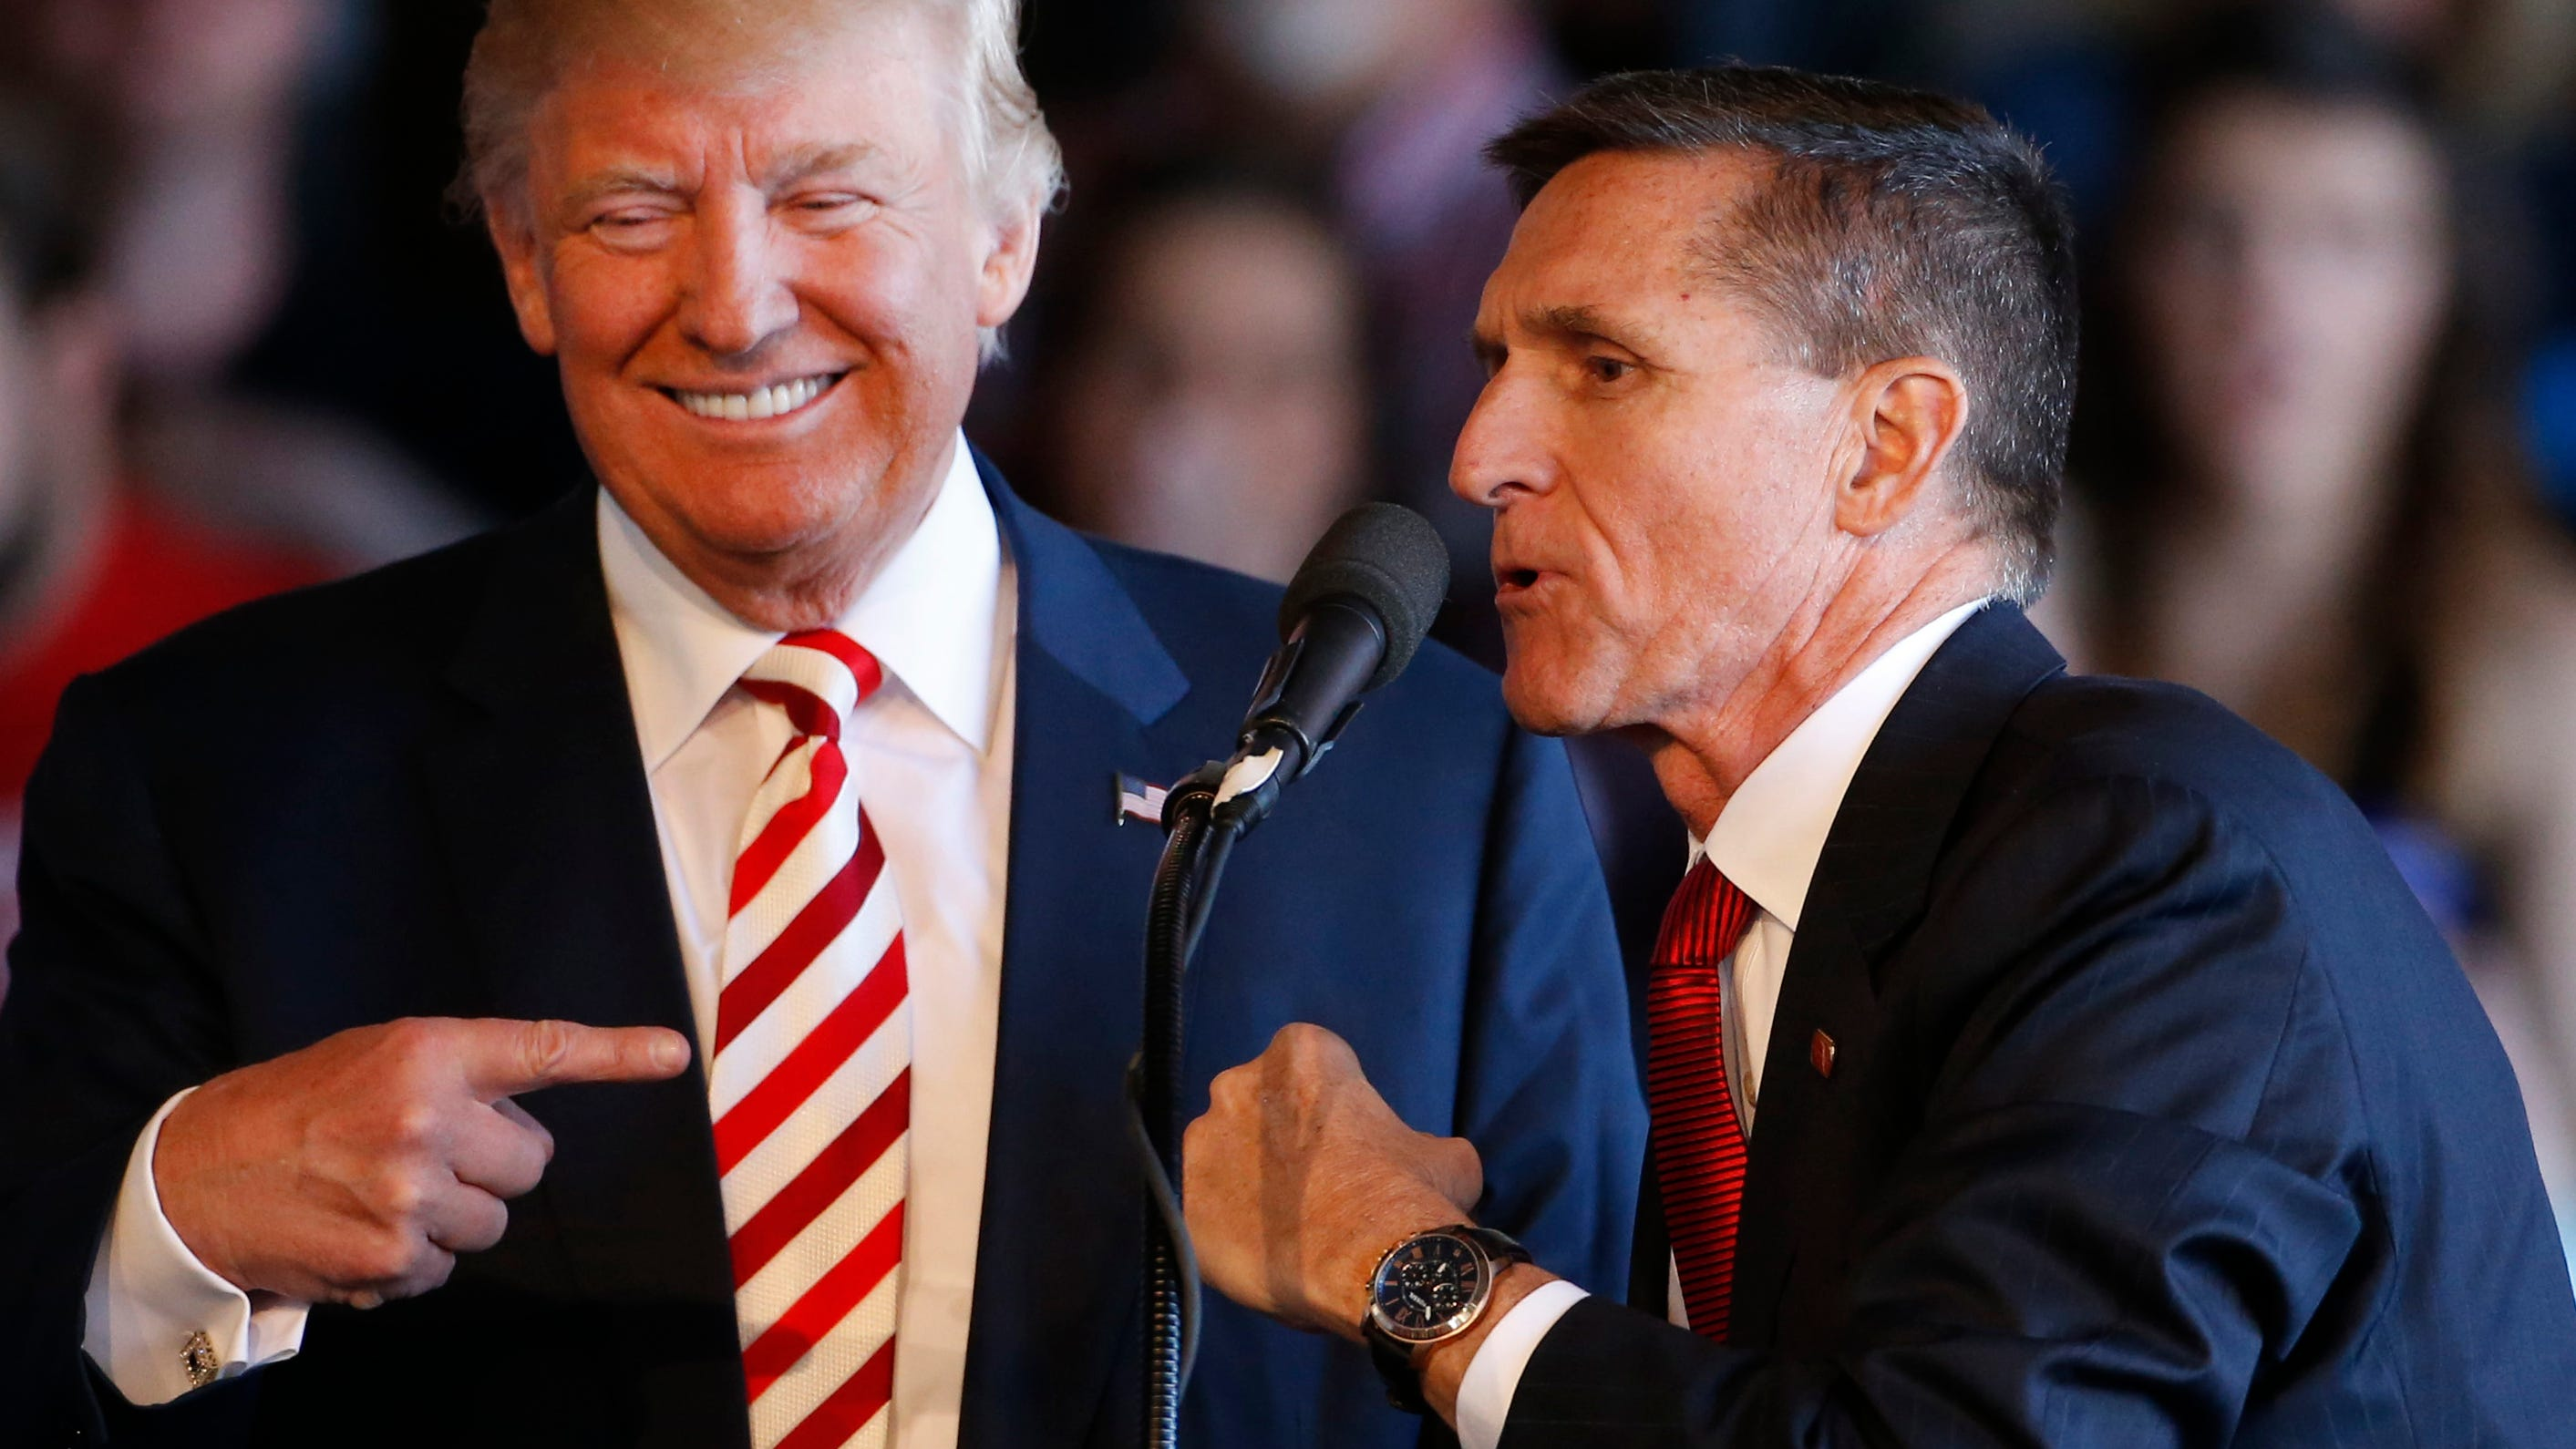 Former Trump national security adviser Michael Flynn (right) is pictured with Donald Trump during rally at Grand Junction Regional Airport on Oct. 18, 2016 in Grand Junction, Colorado.